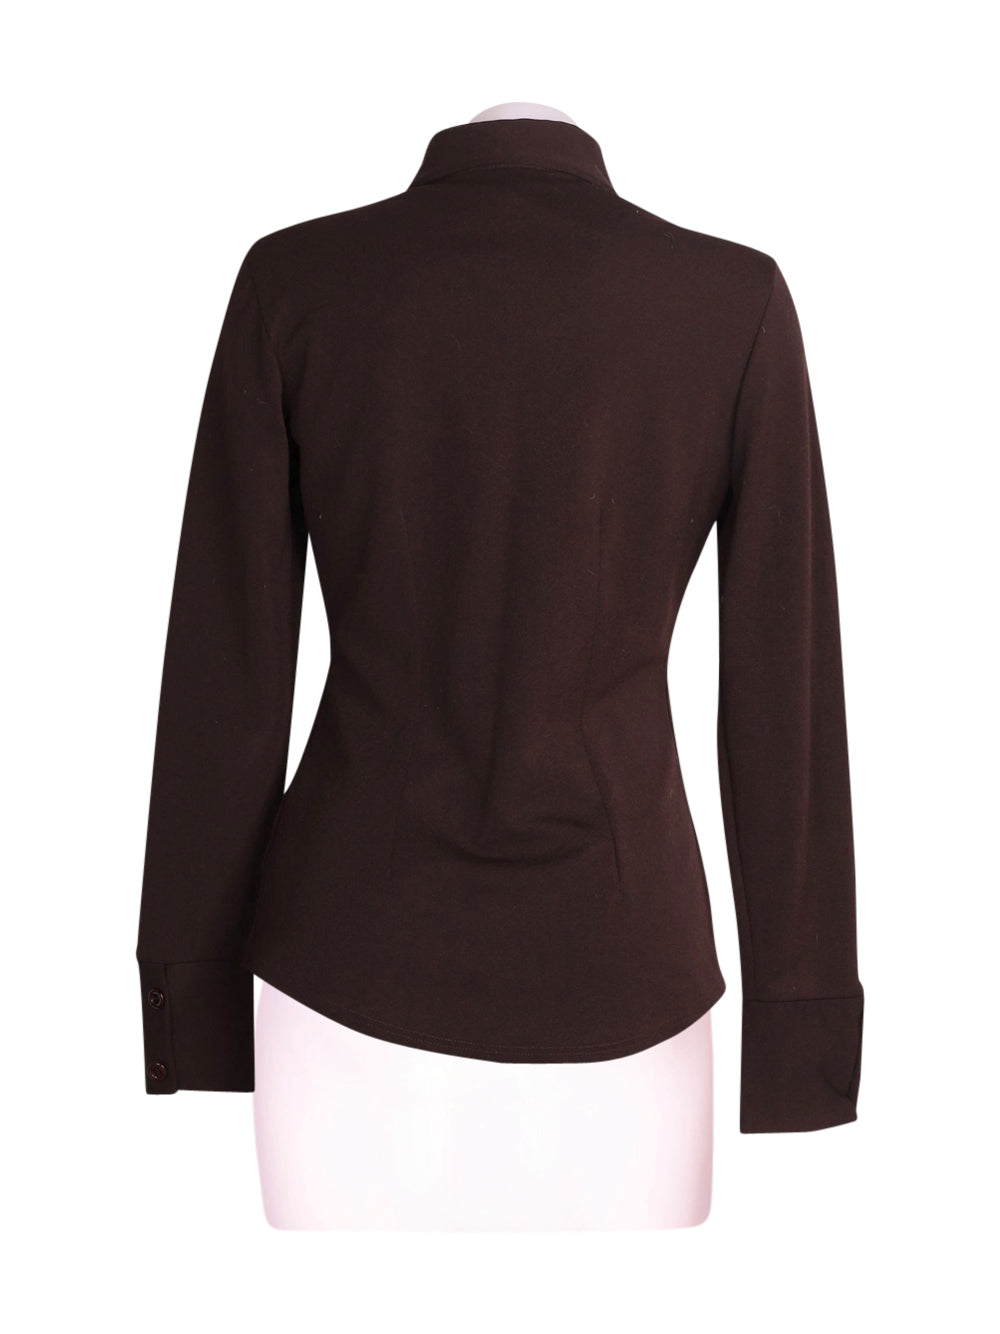 Back photo of Preloved Pinko Brown Woman's jacket - size 10/M